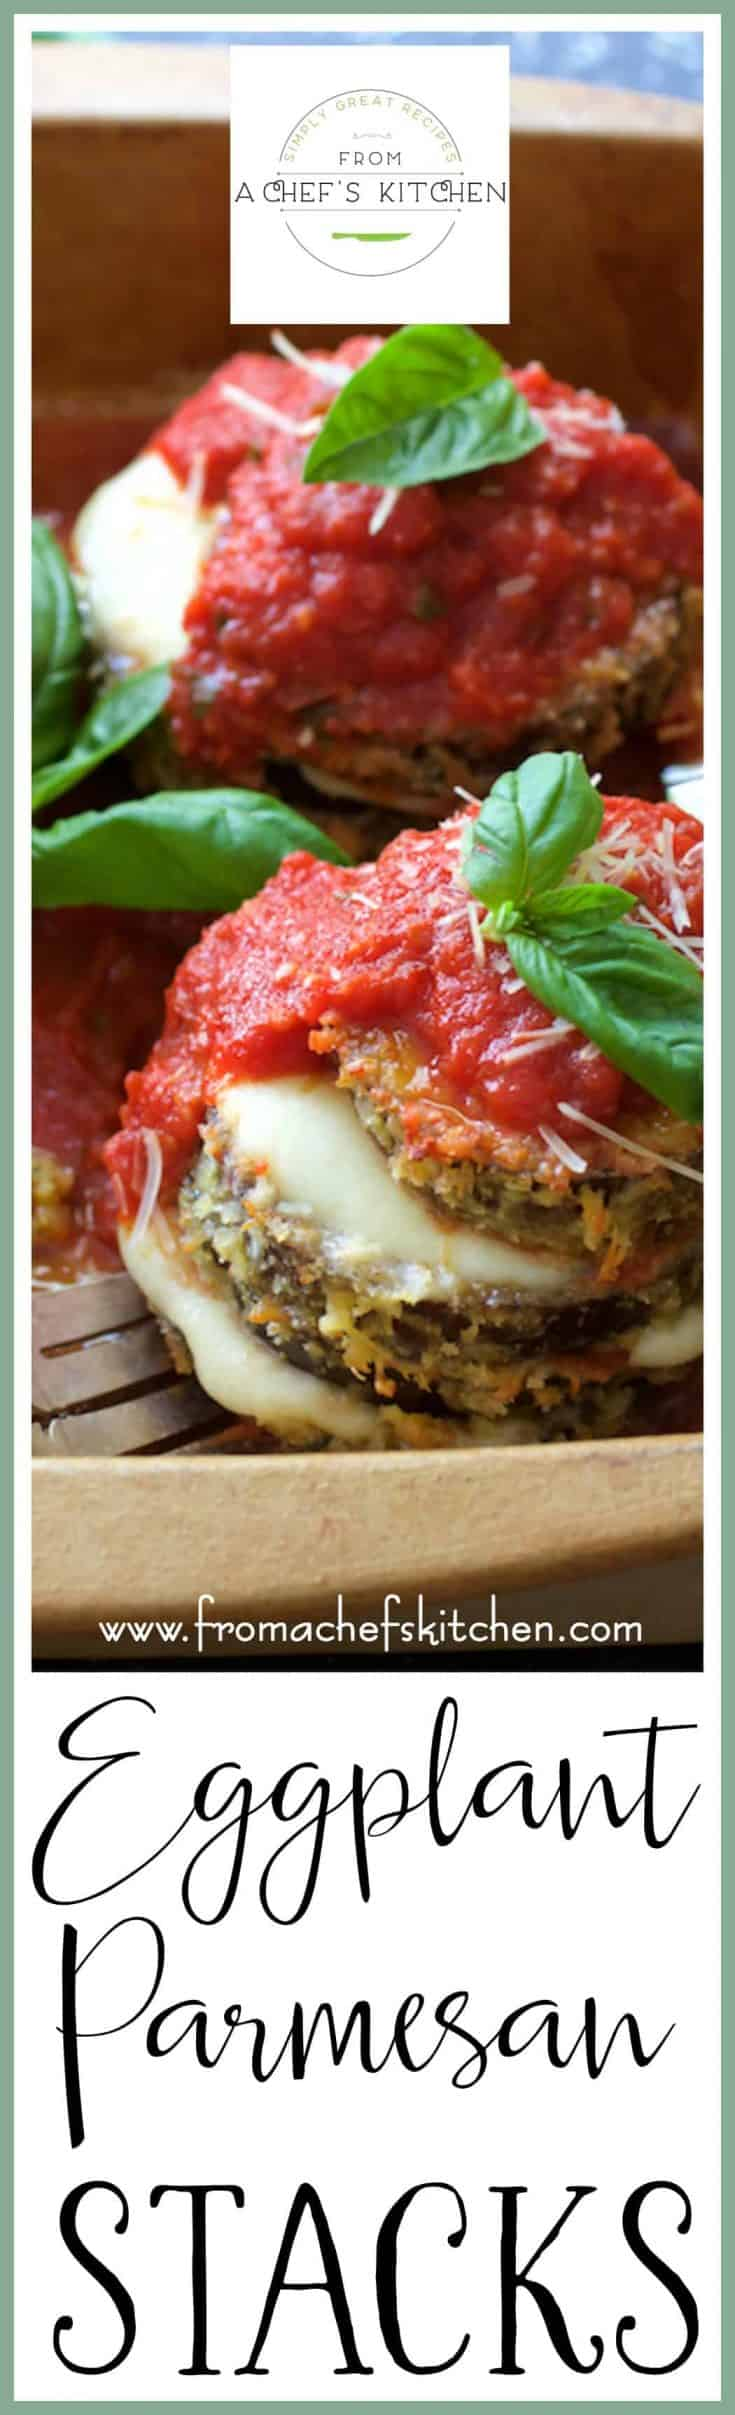 Eggplant Parmesan Stacks are a fresher and lighter way to enjoy an Italian classic! #eggplant #eggplantparmesan #healthiereggplantparmesan